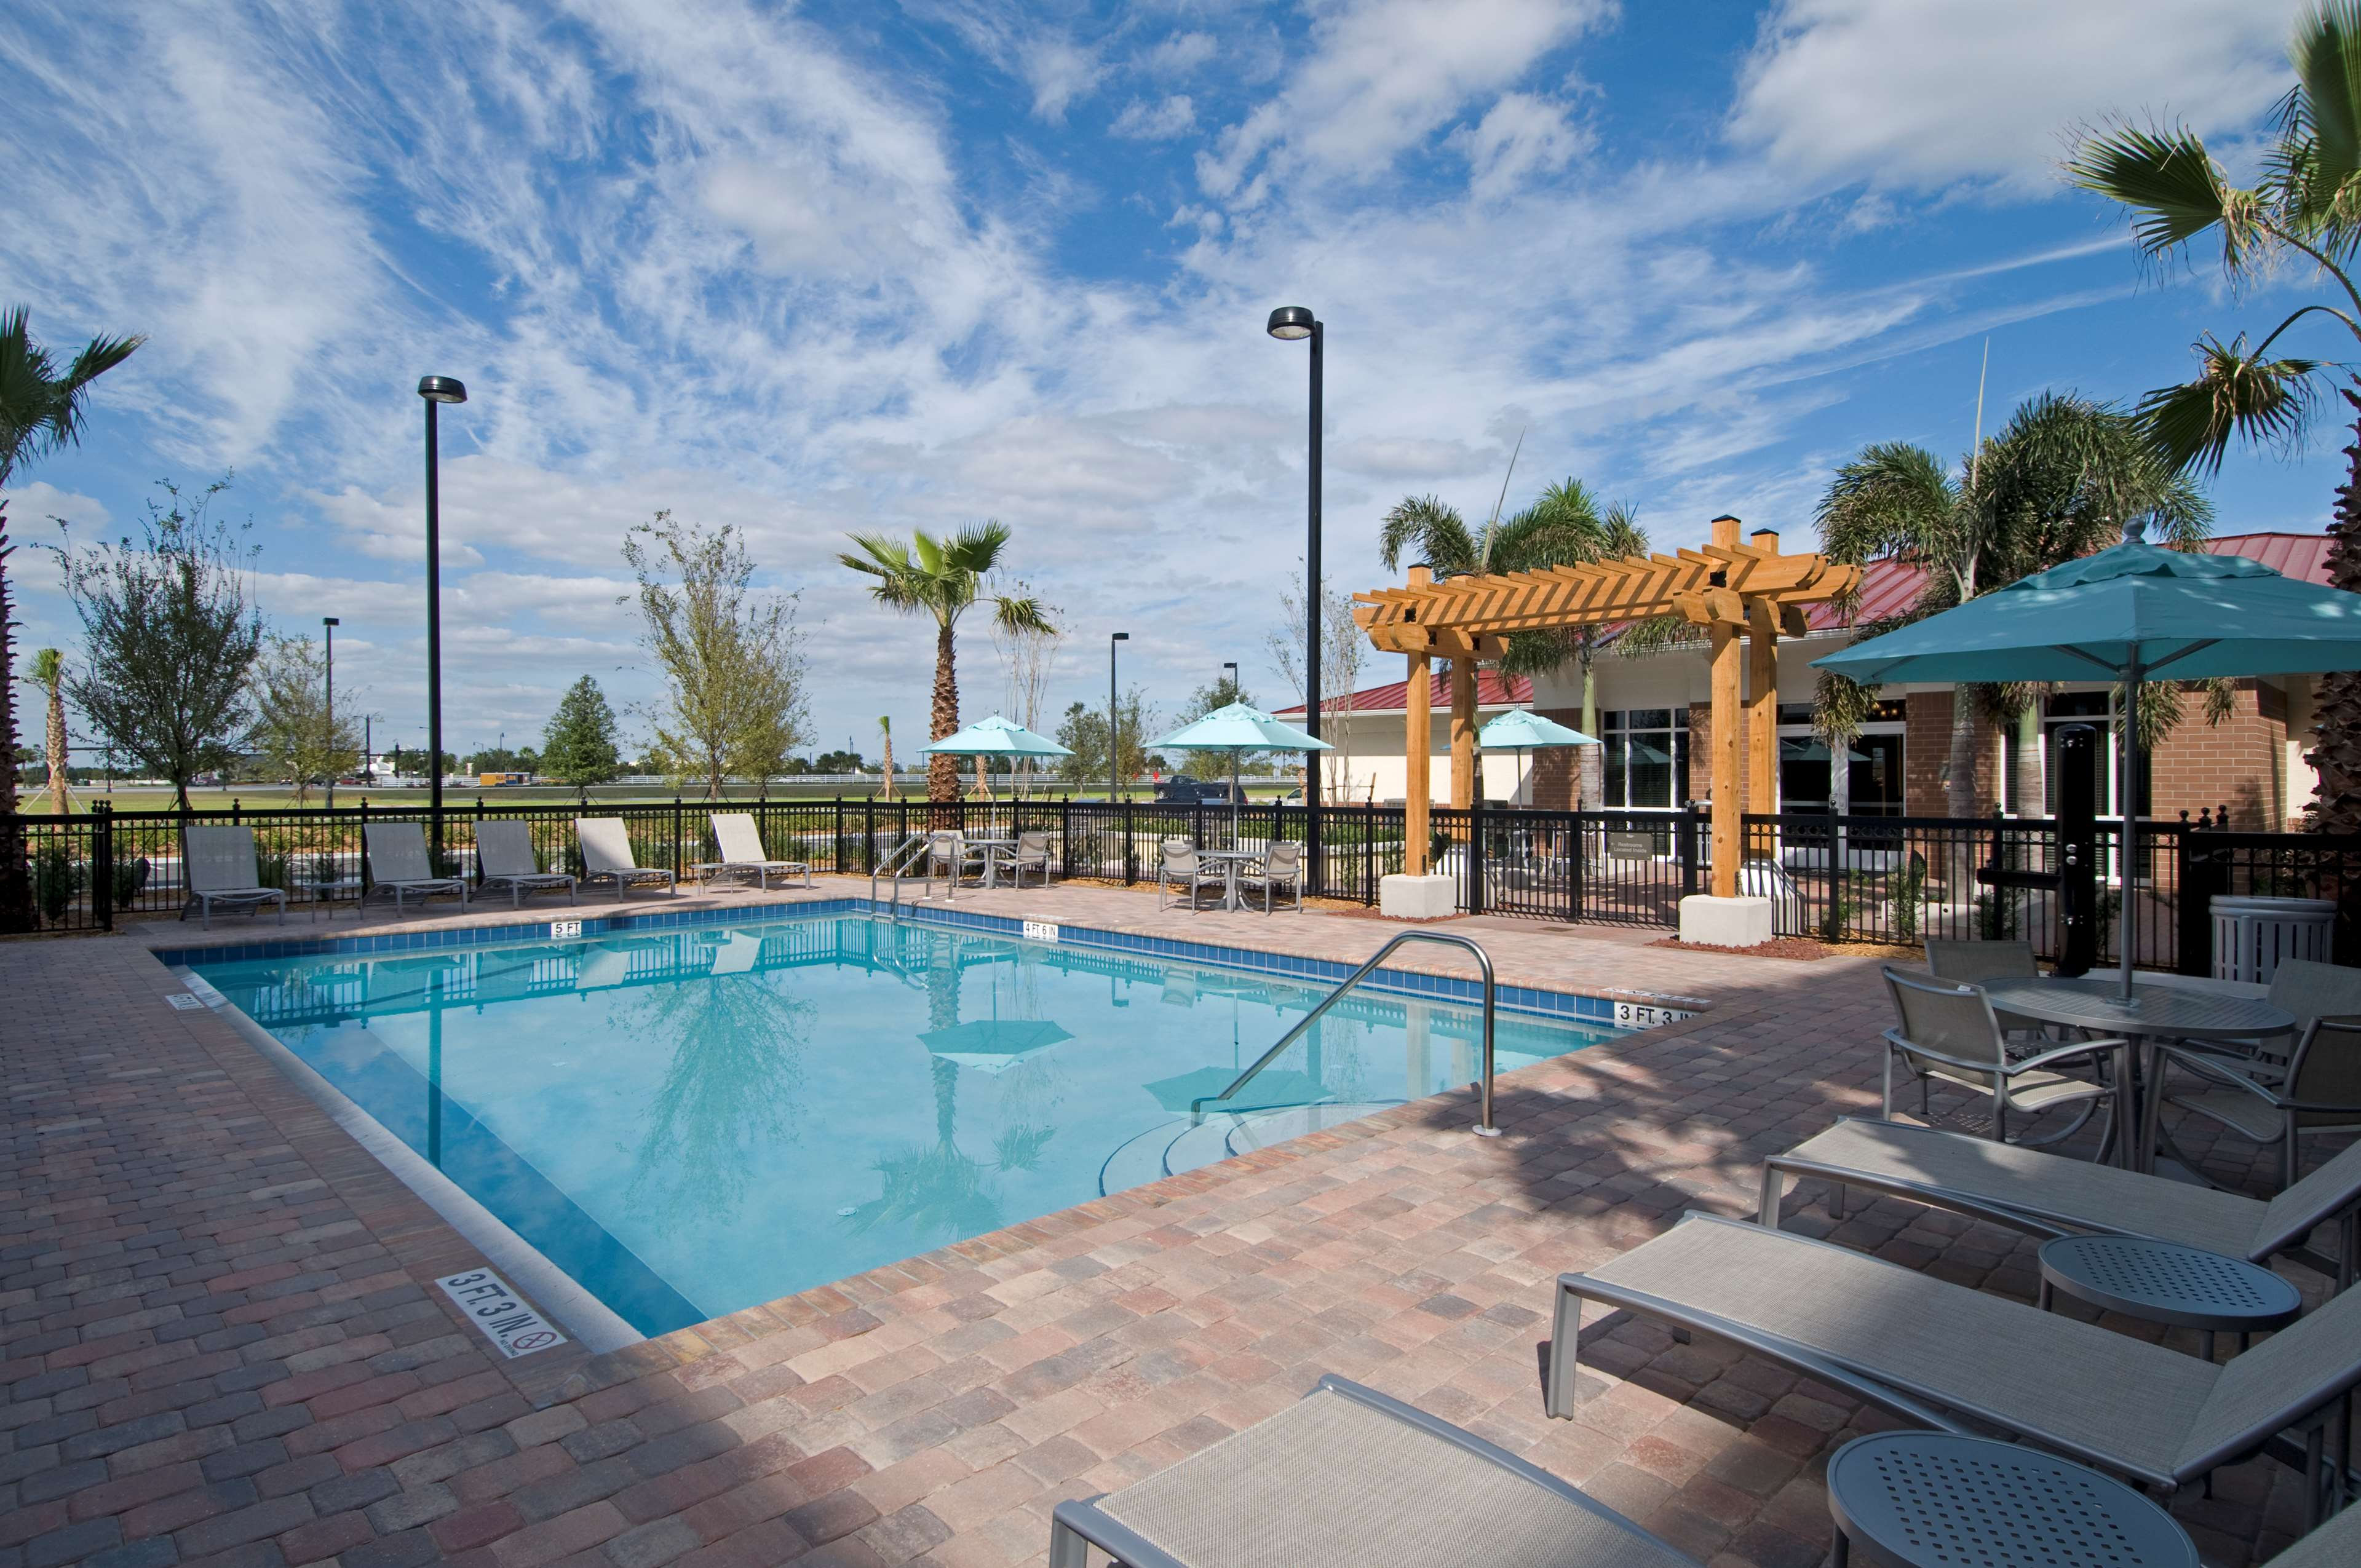 Homewood Suites by Hilton Port St. Lucie-Tradition image 2